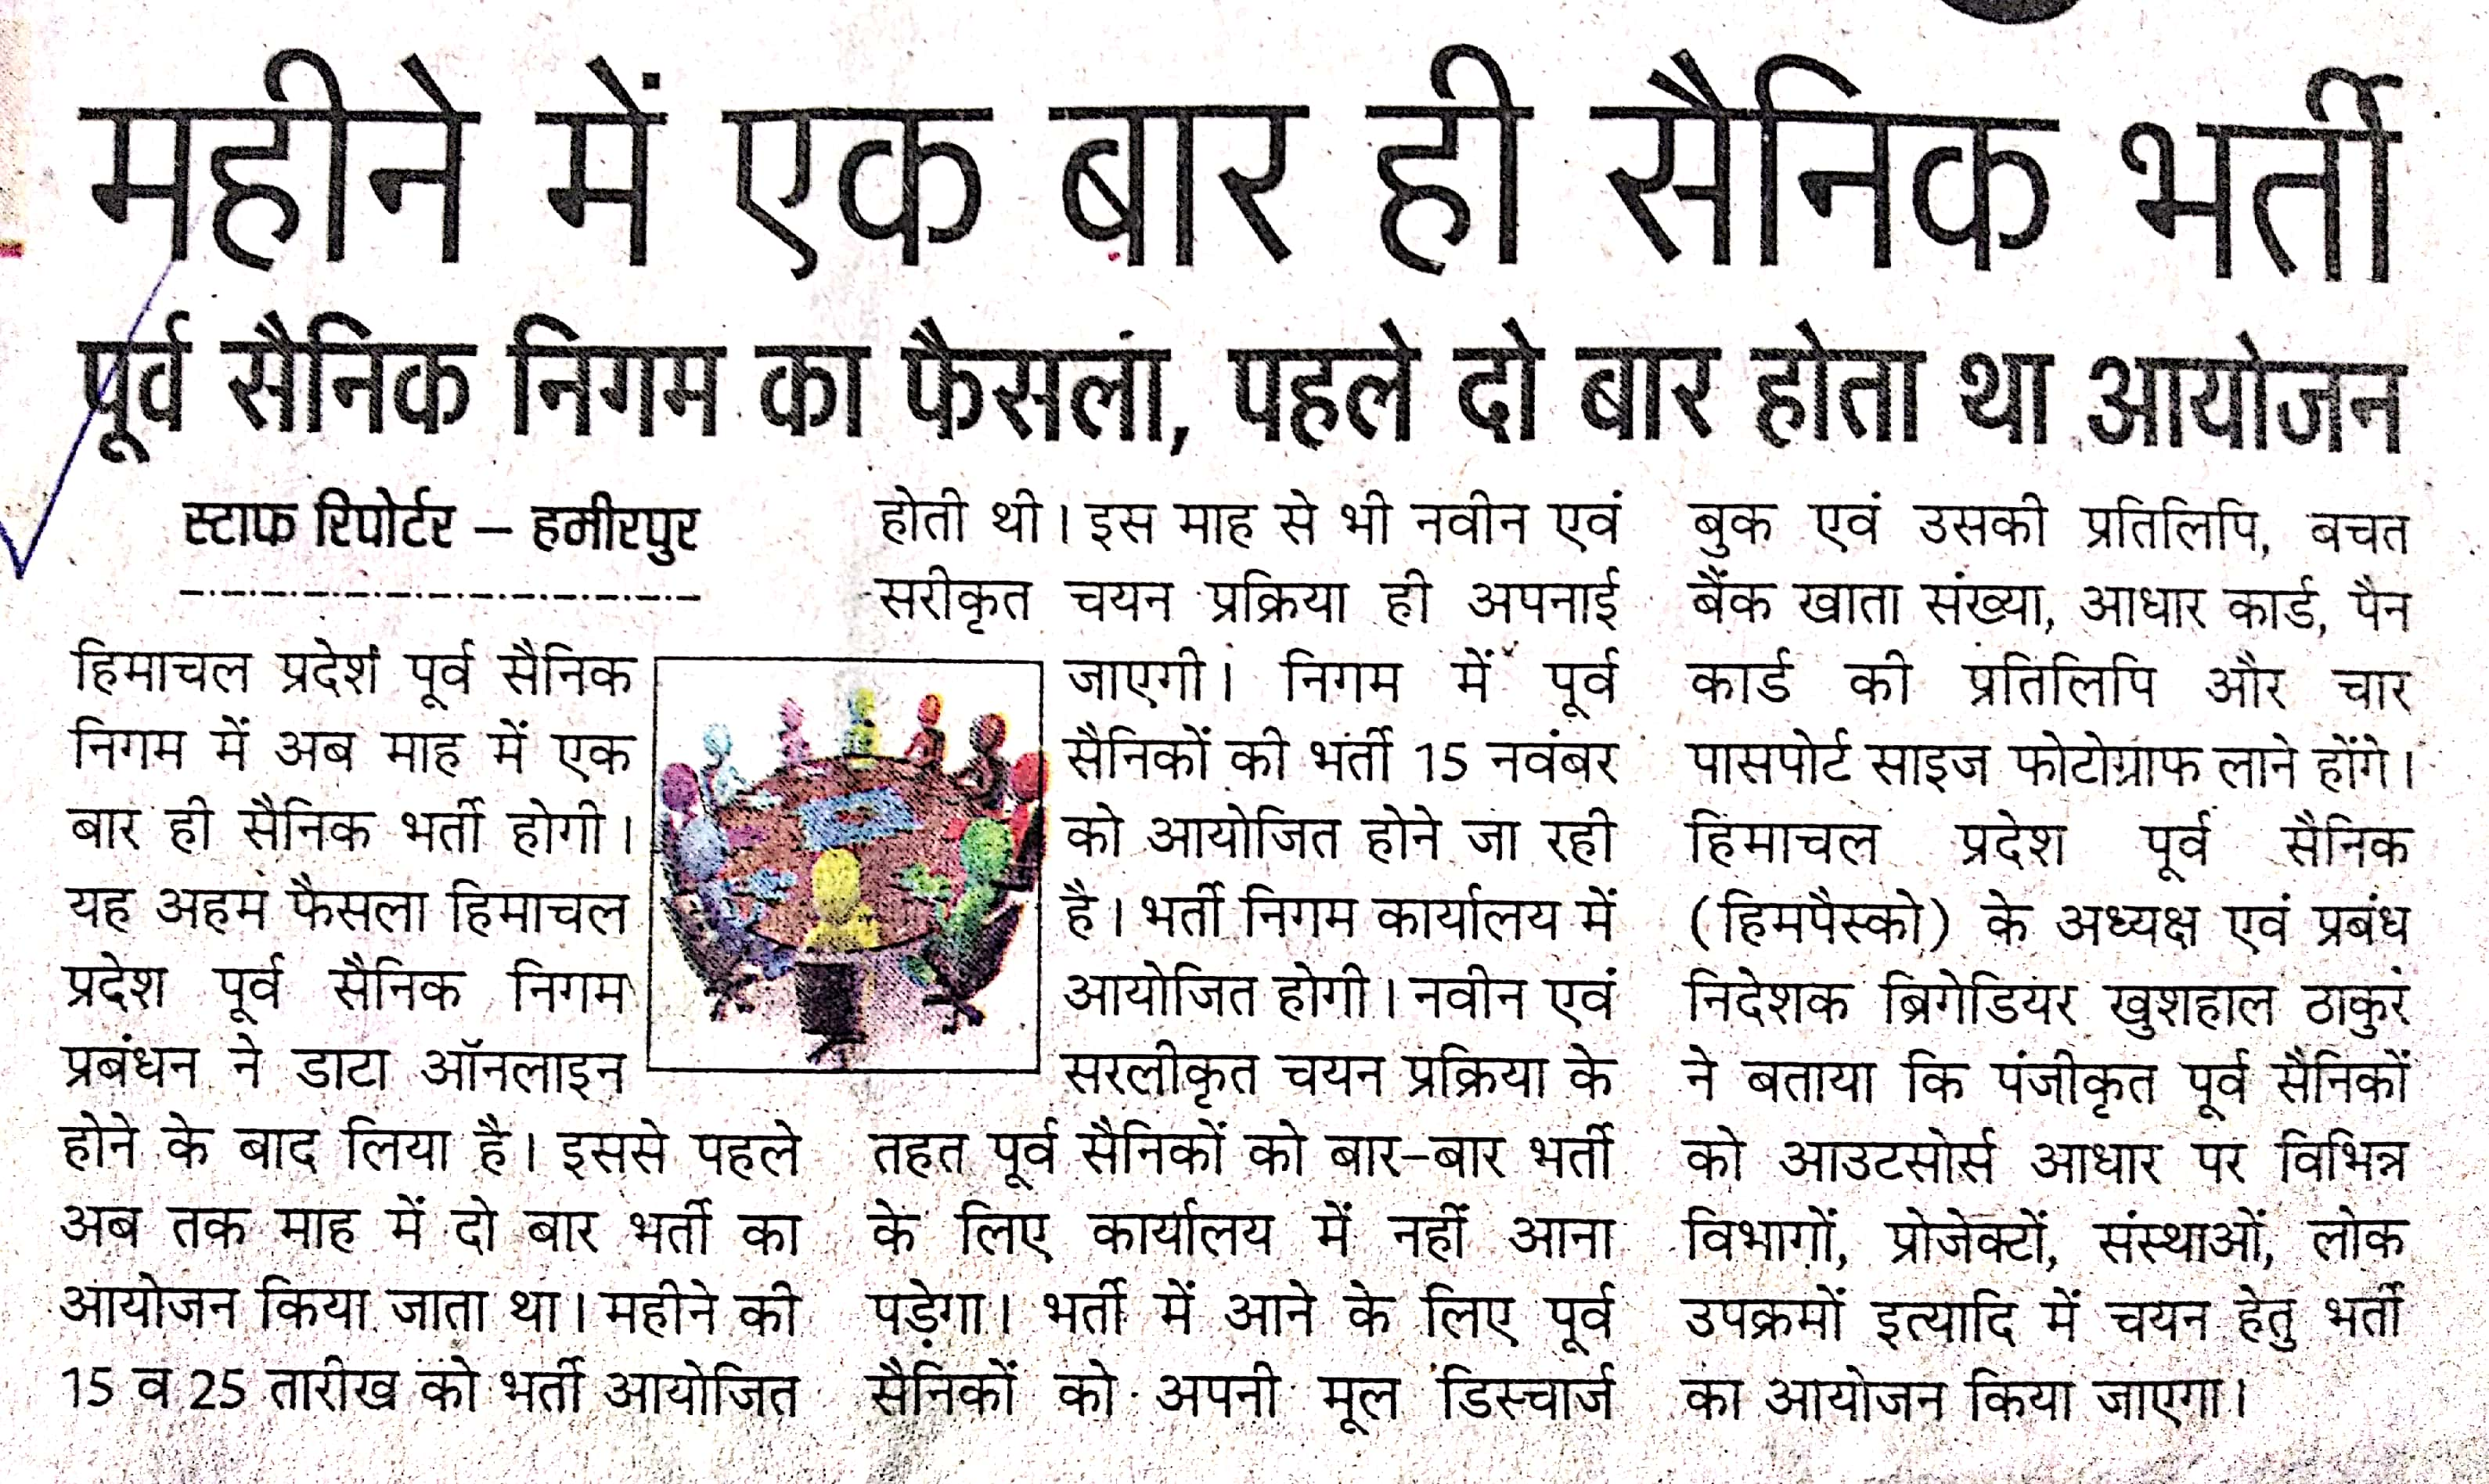 News Clipping - Divya Himachal